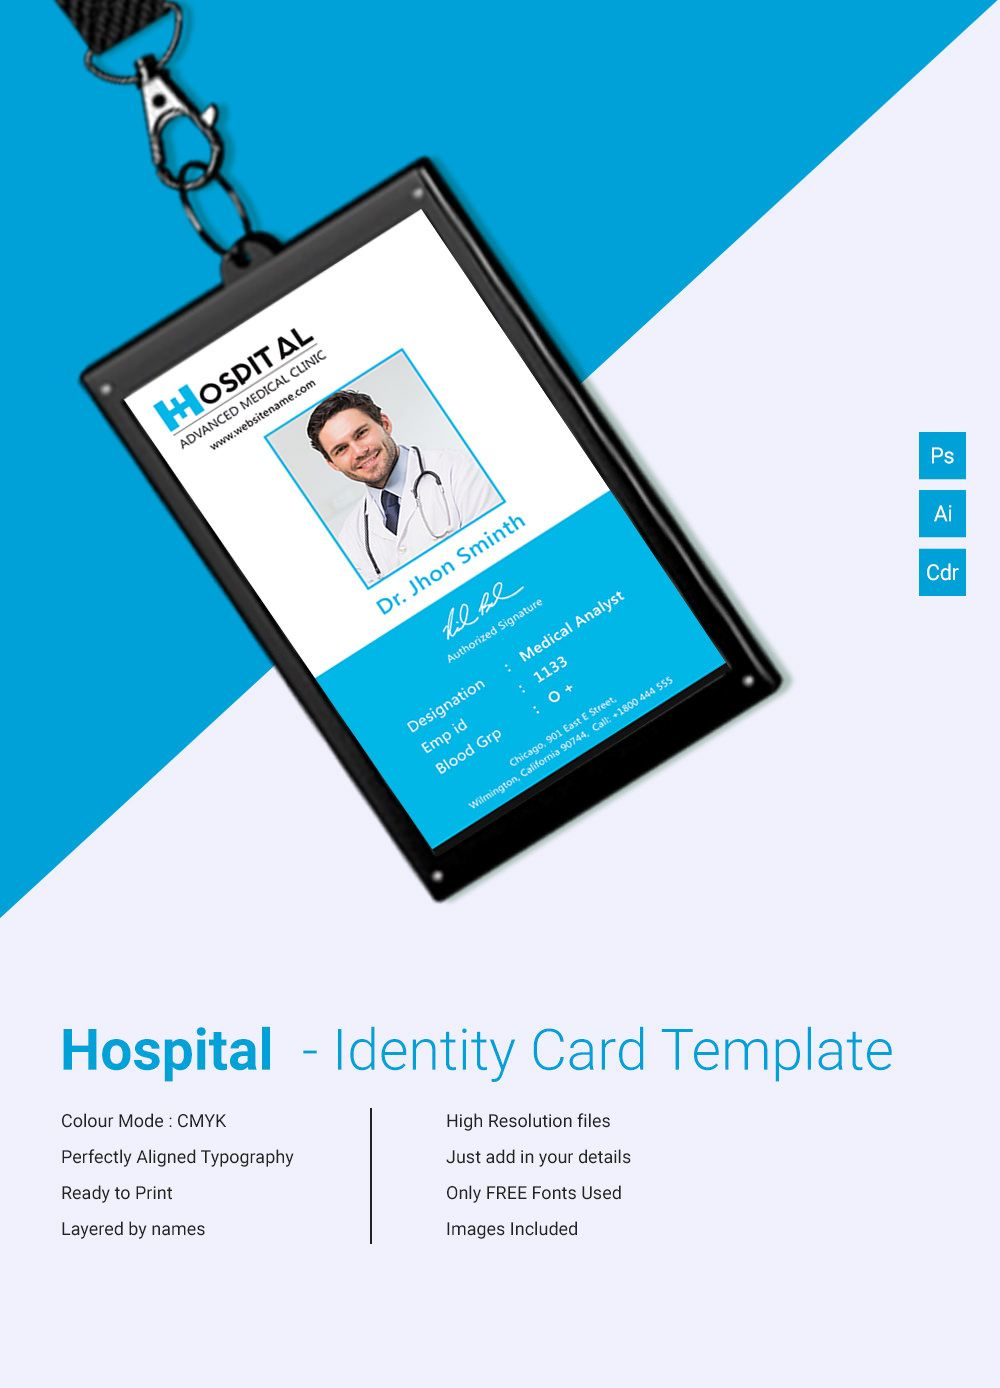 Designing An Id Card From Scratch Is Not An Easy Task To Pull Off